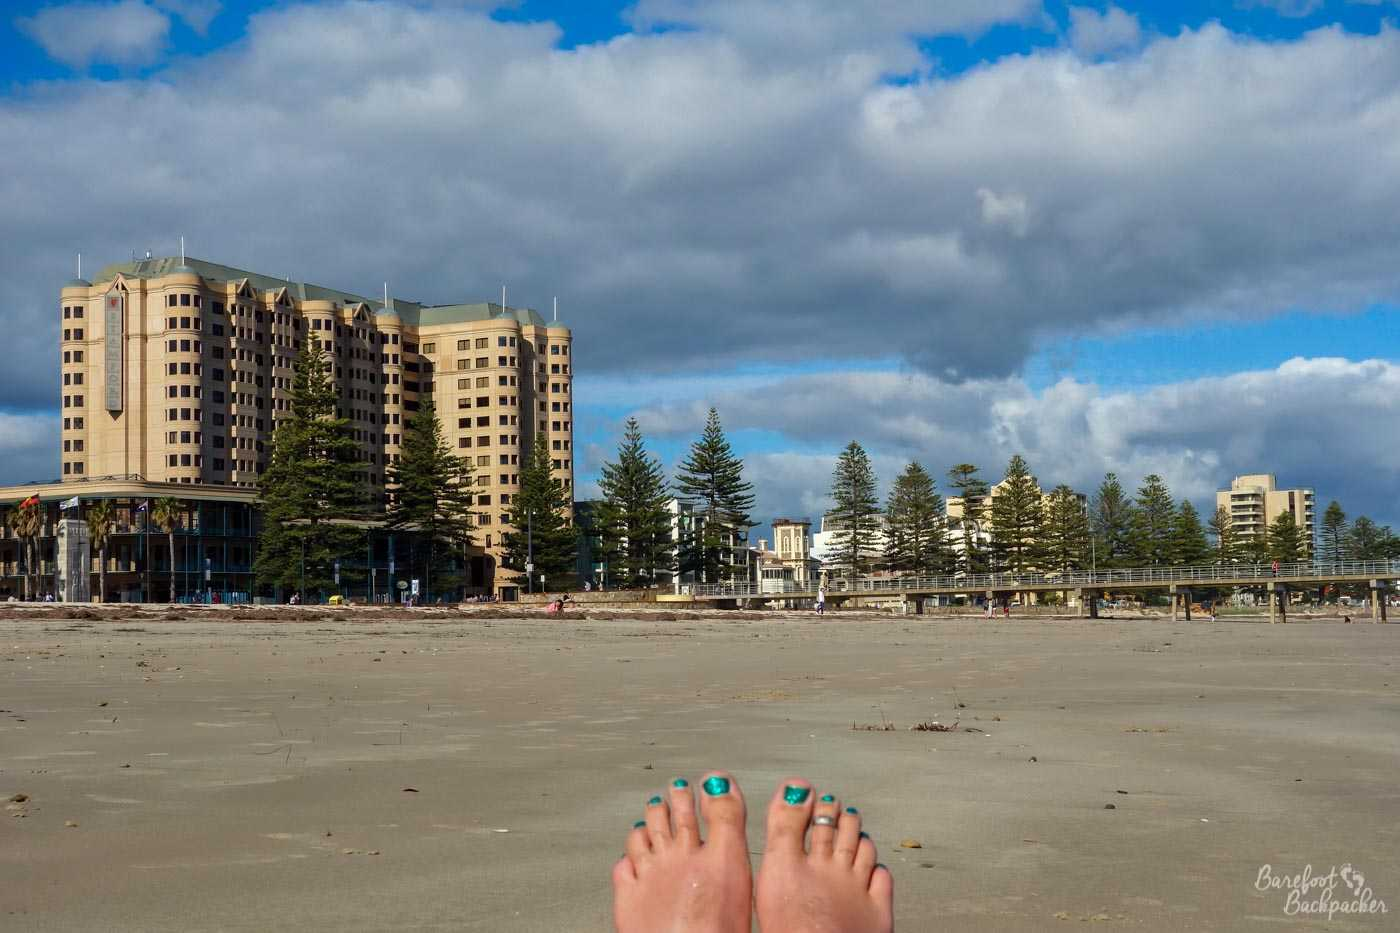 The beach at Glenelg, looking back towards the town. It's sandy. There are bare toes at the bottom of the shot. Because it's a beach and people who wear shoes on a sandy beach are weird. There, I said it.